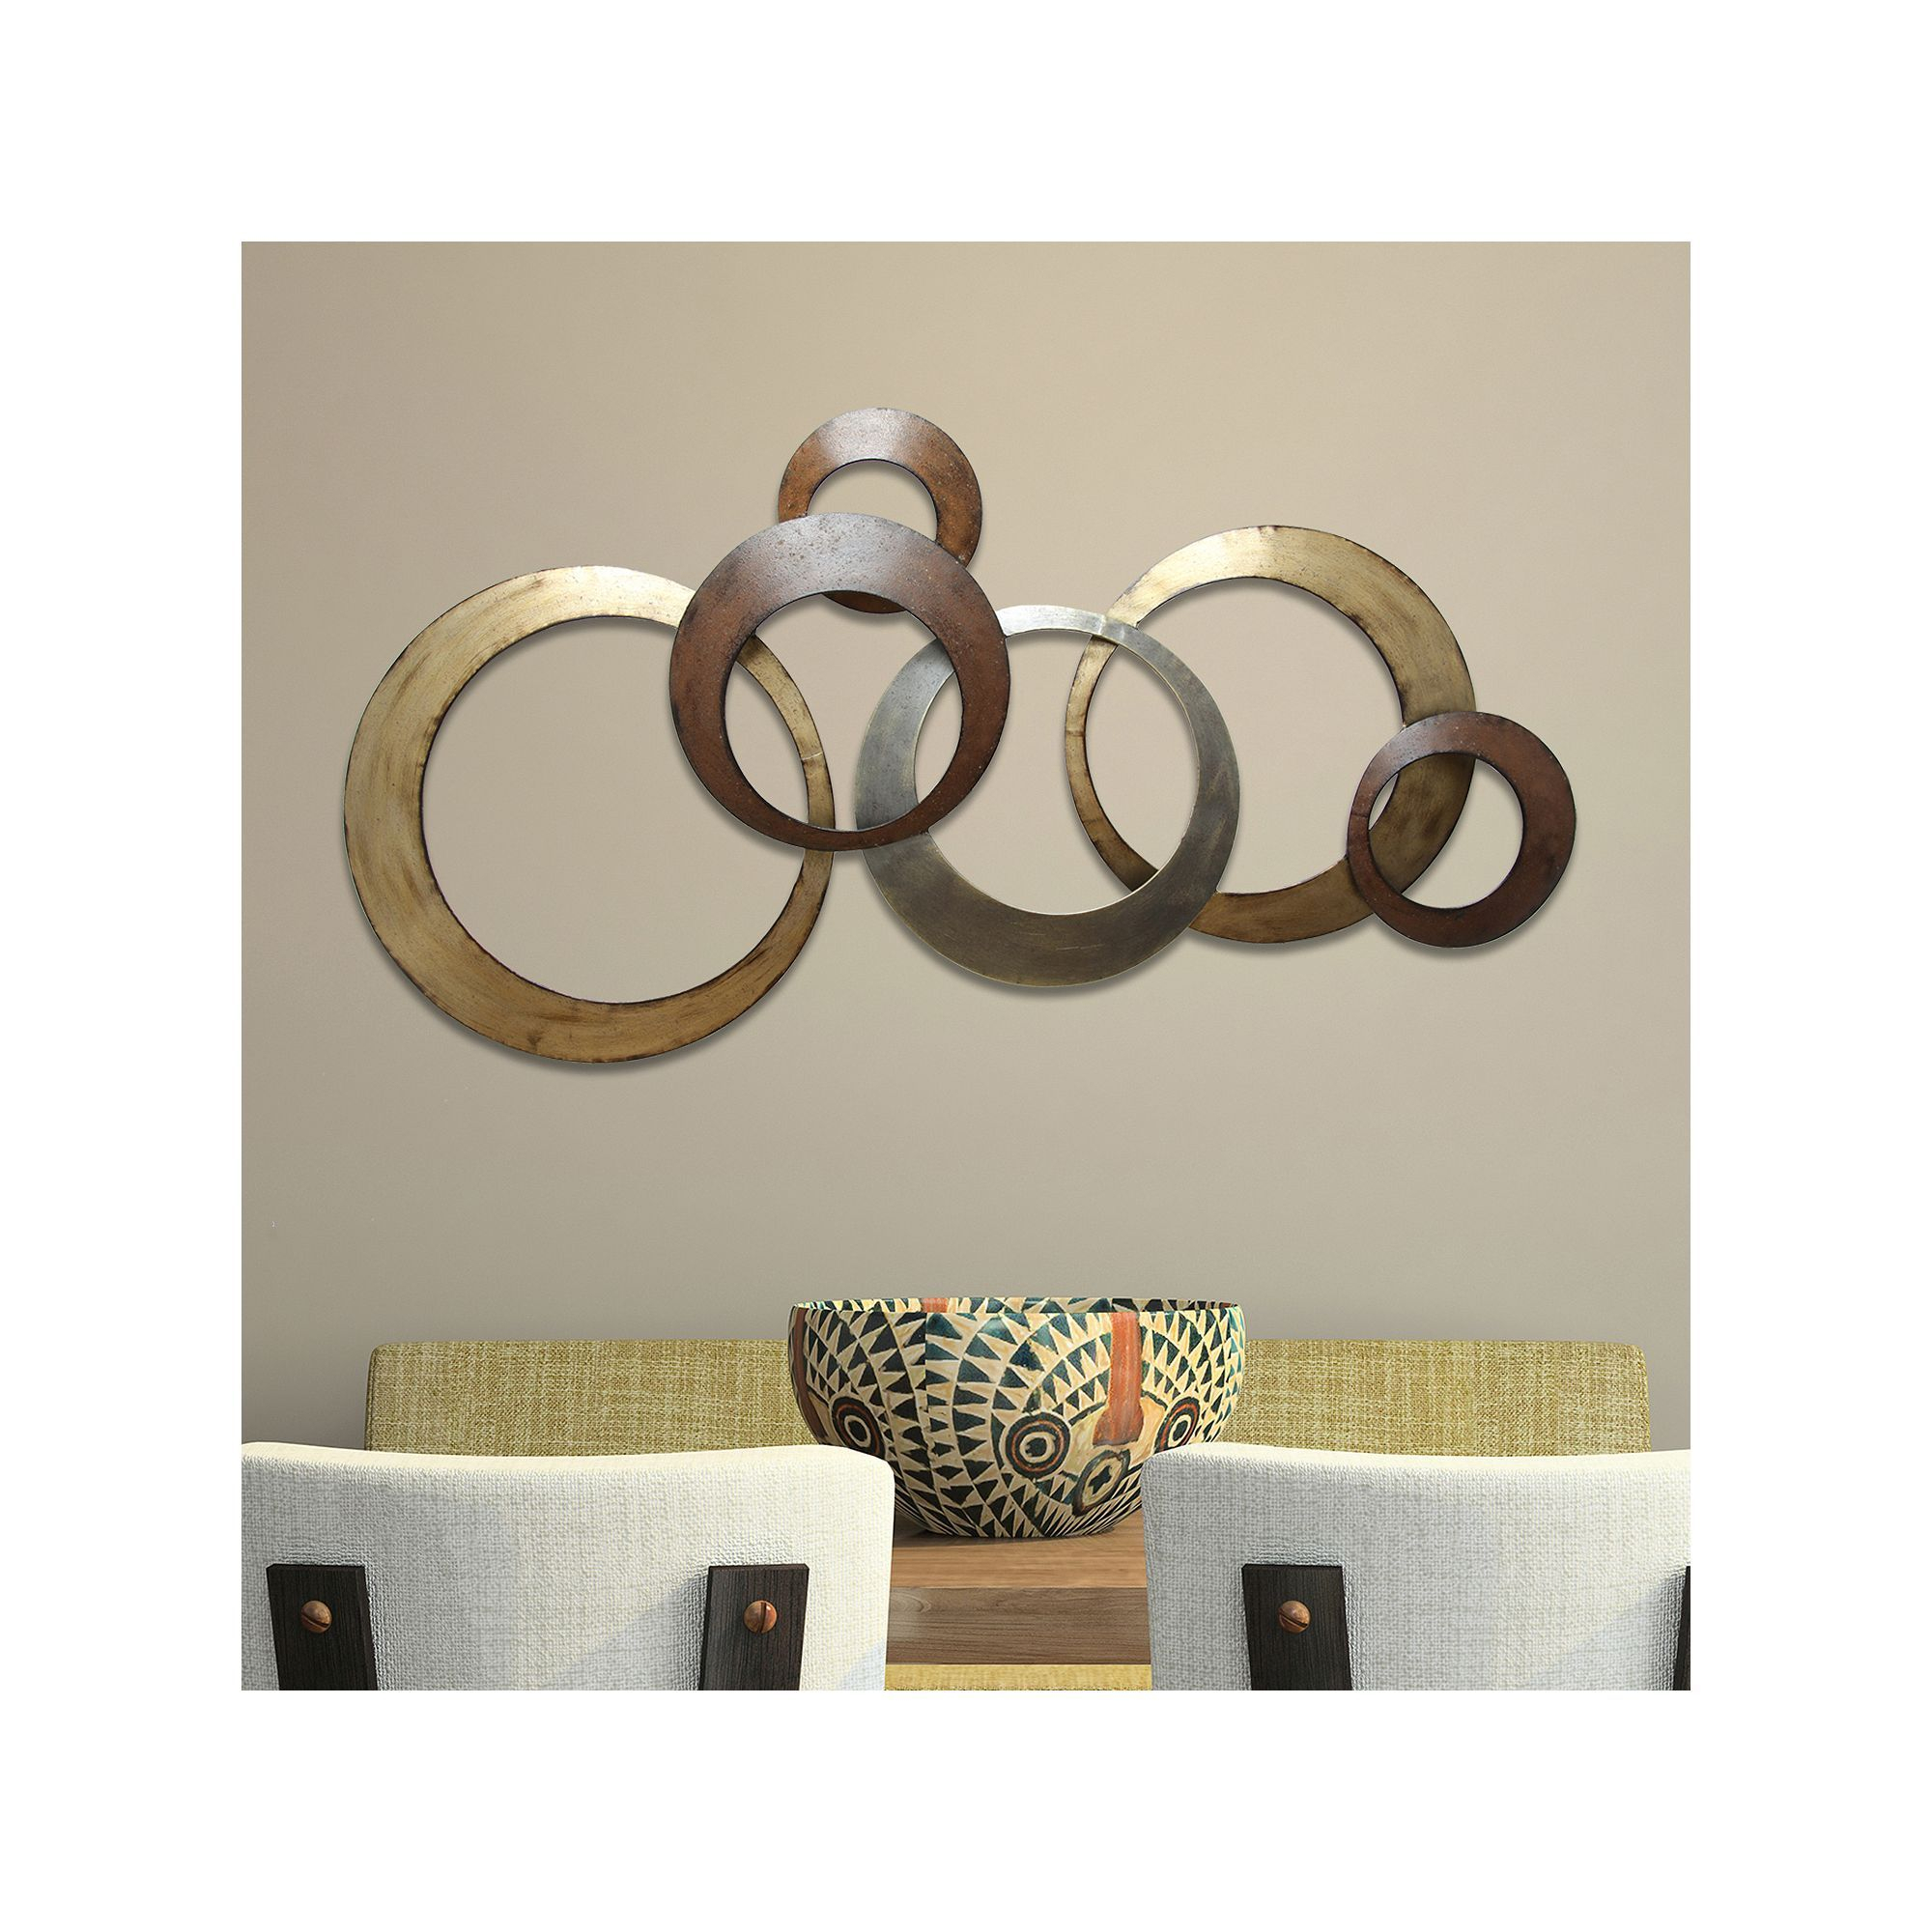 Metal Intended For Rings Wall Decor (View 18 of 20)